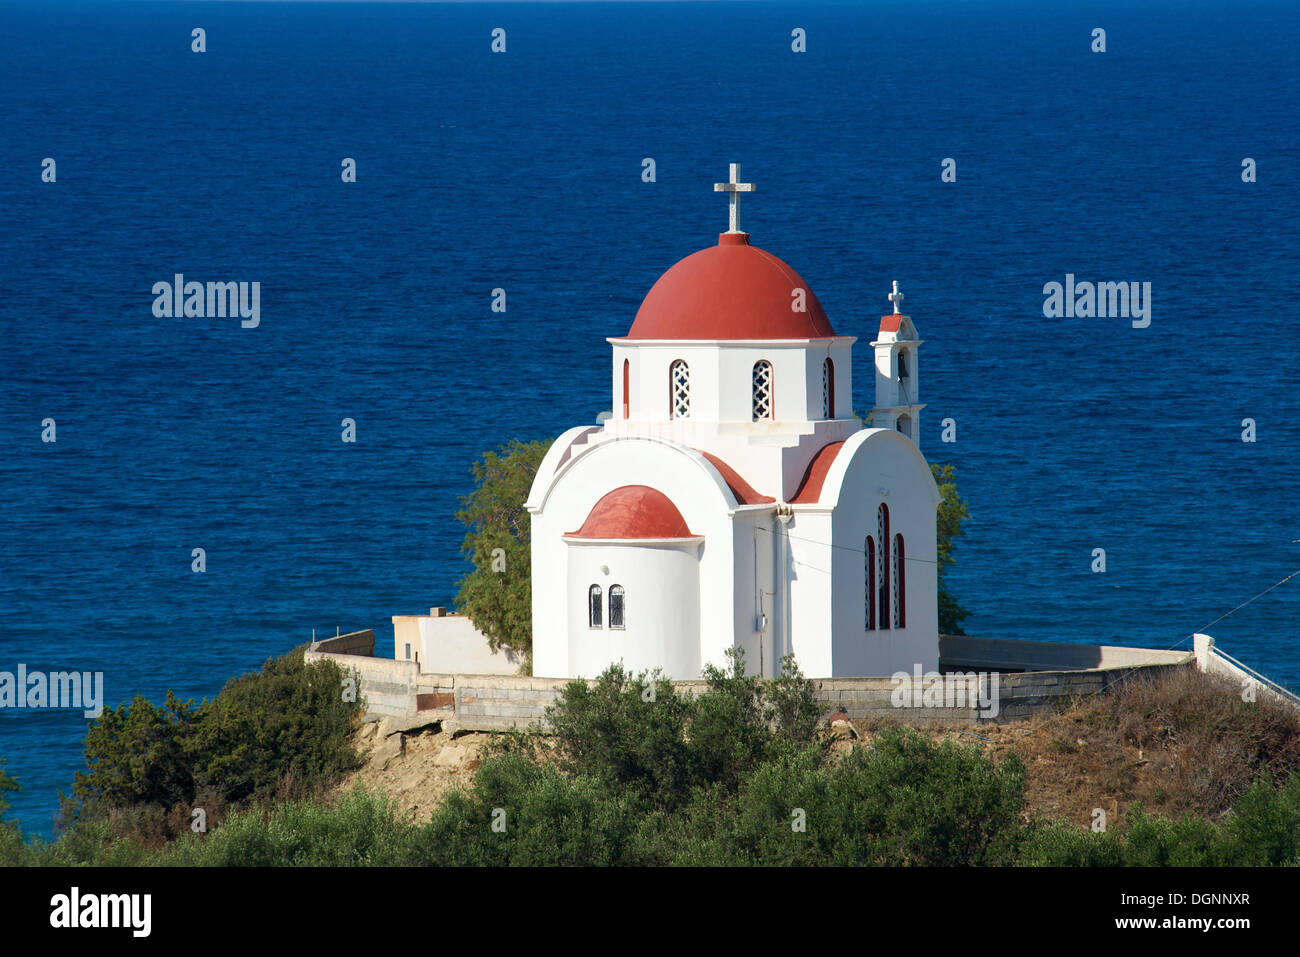 Nea Mirtos church, south coast, Crete, Greece, Europe - Stock Image